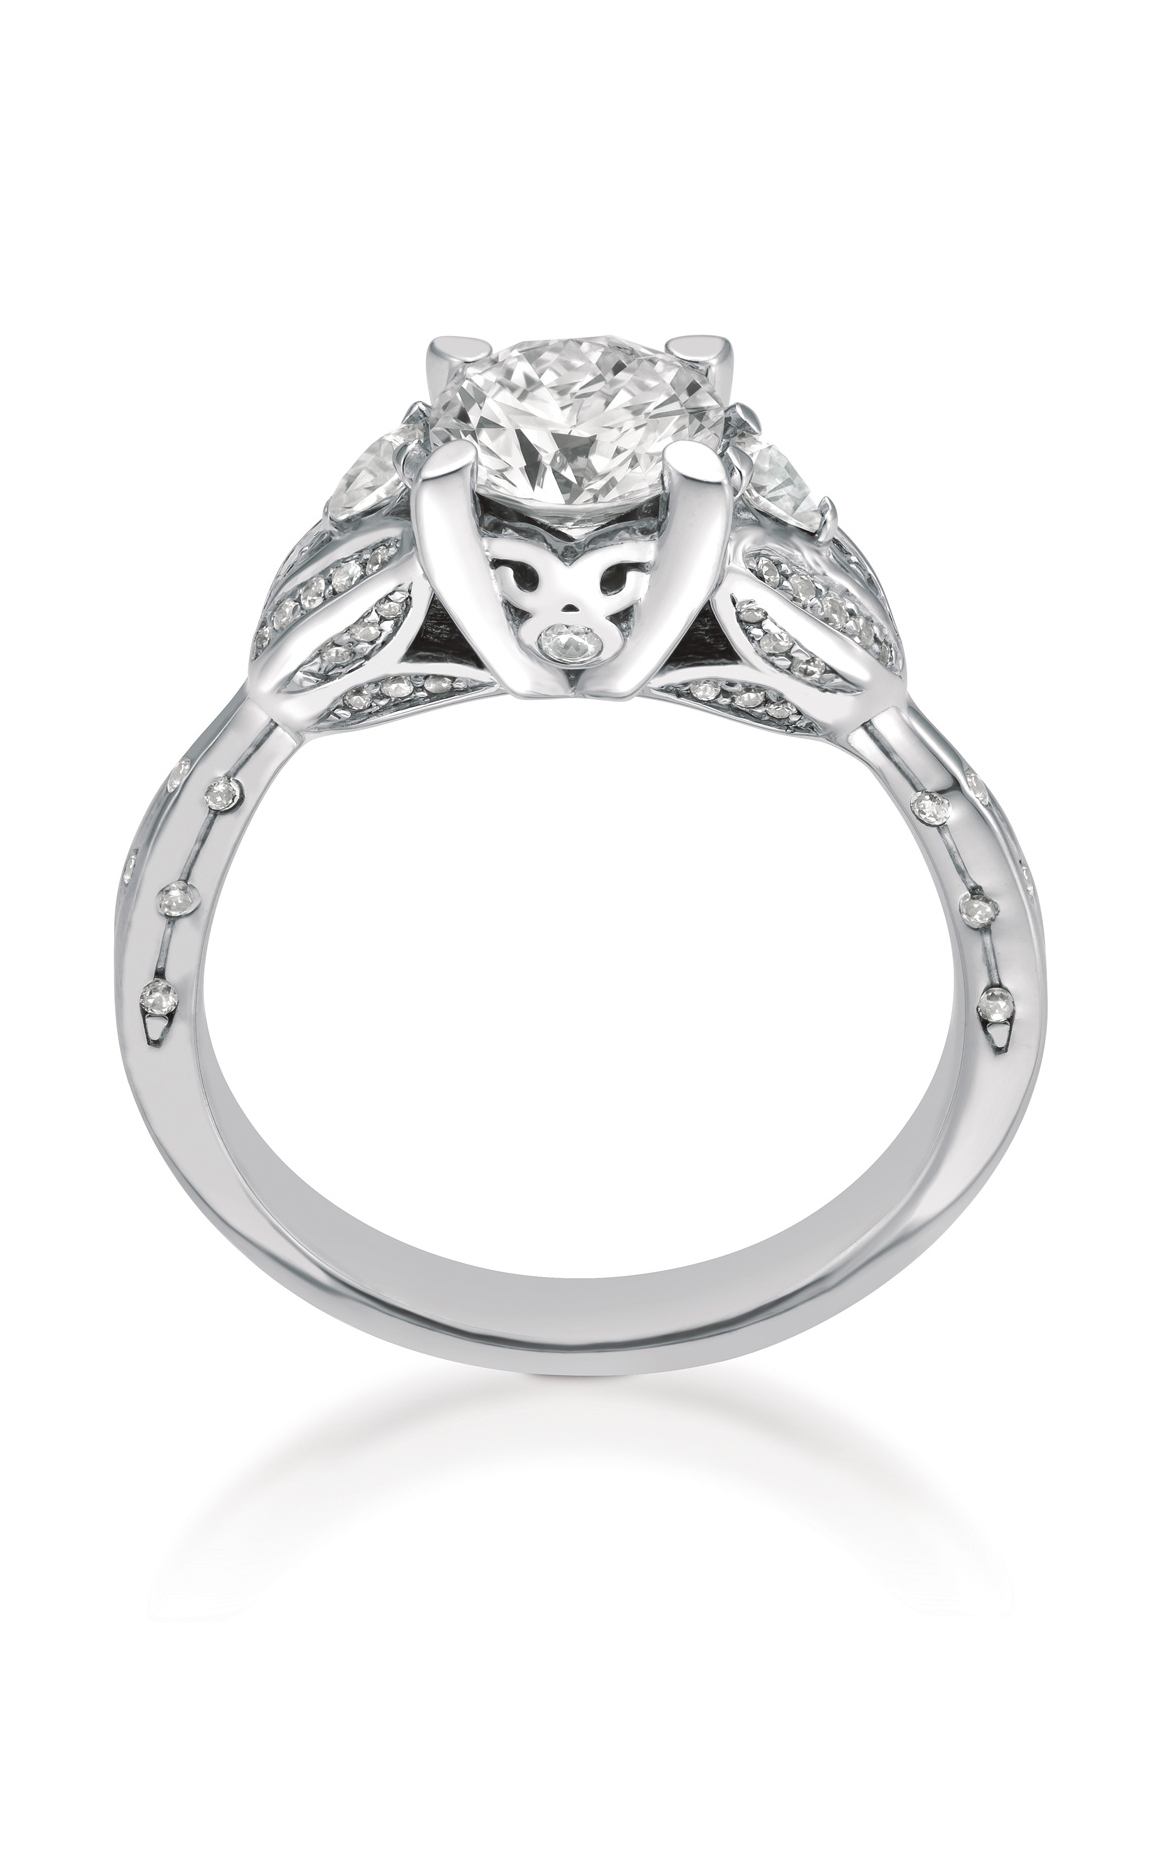 Shop Maevona A081 Tul Pv G8 Engagement Ring | Benari Jewelers With Regard To Scottish Engagement Rings (View 12 of 15)